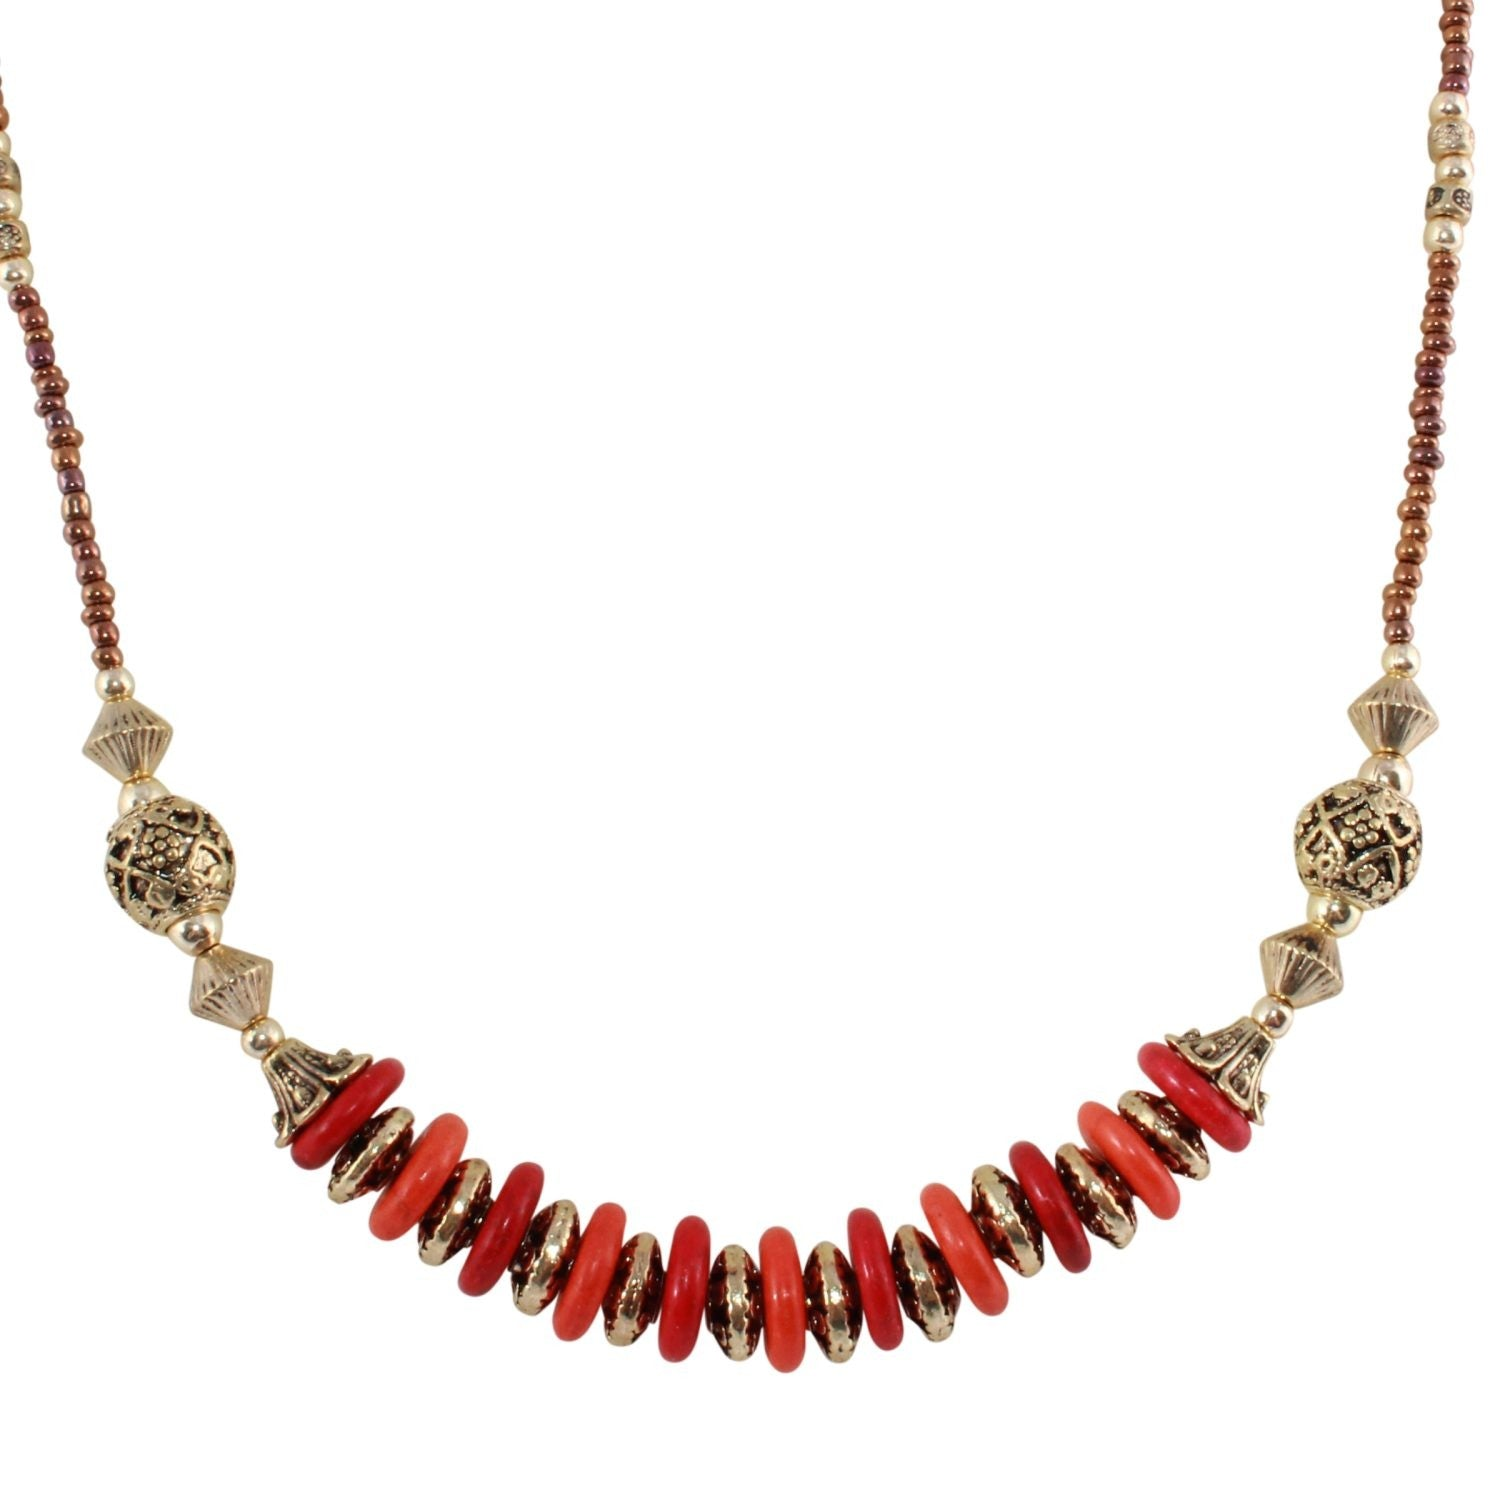 Kashmir Princess - Red & Orange Necklace - Global Goddess Homewares